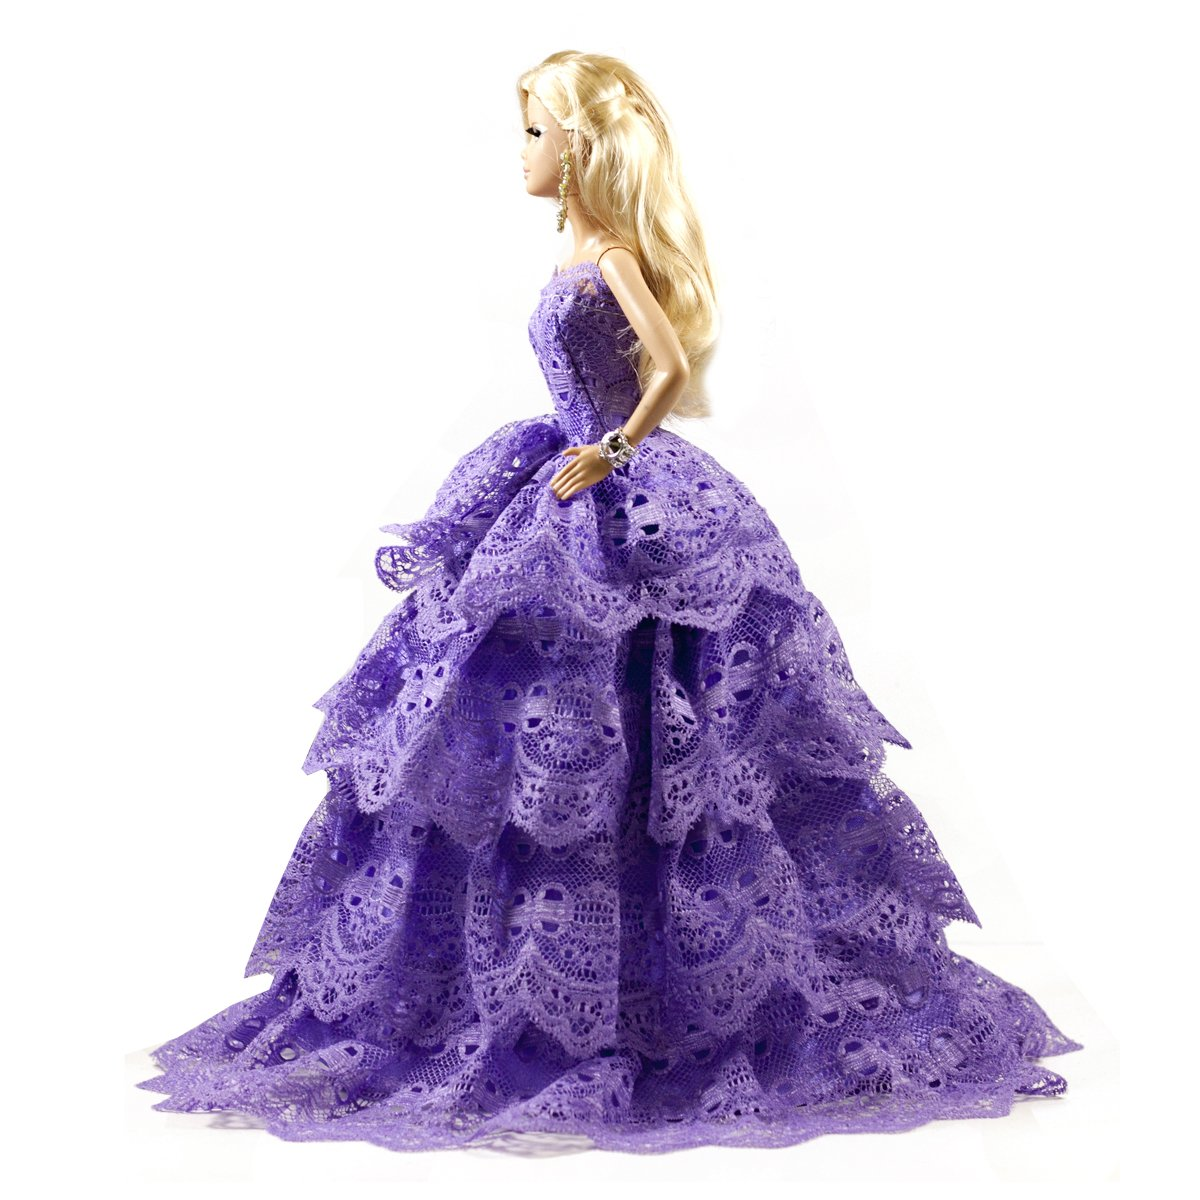 931fd00a8 Amazon.com: Peregrine Purple Layered Ball Gown Purple Lace Wedding Dress  Gown for 11.5 inches Dolls: Toys & Games